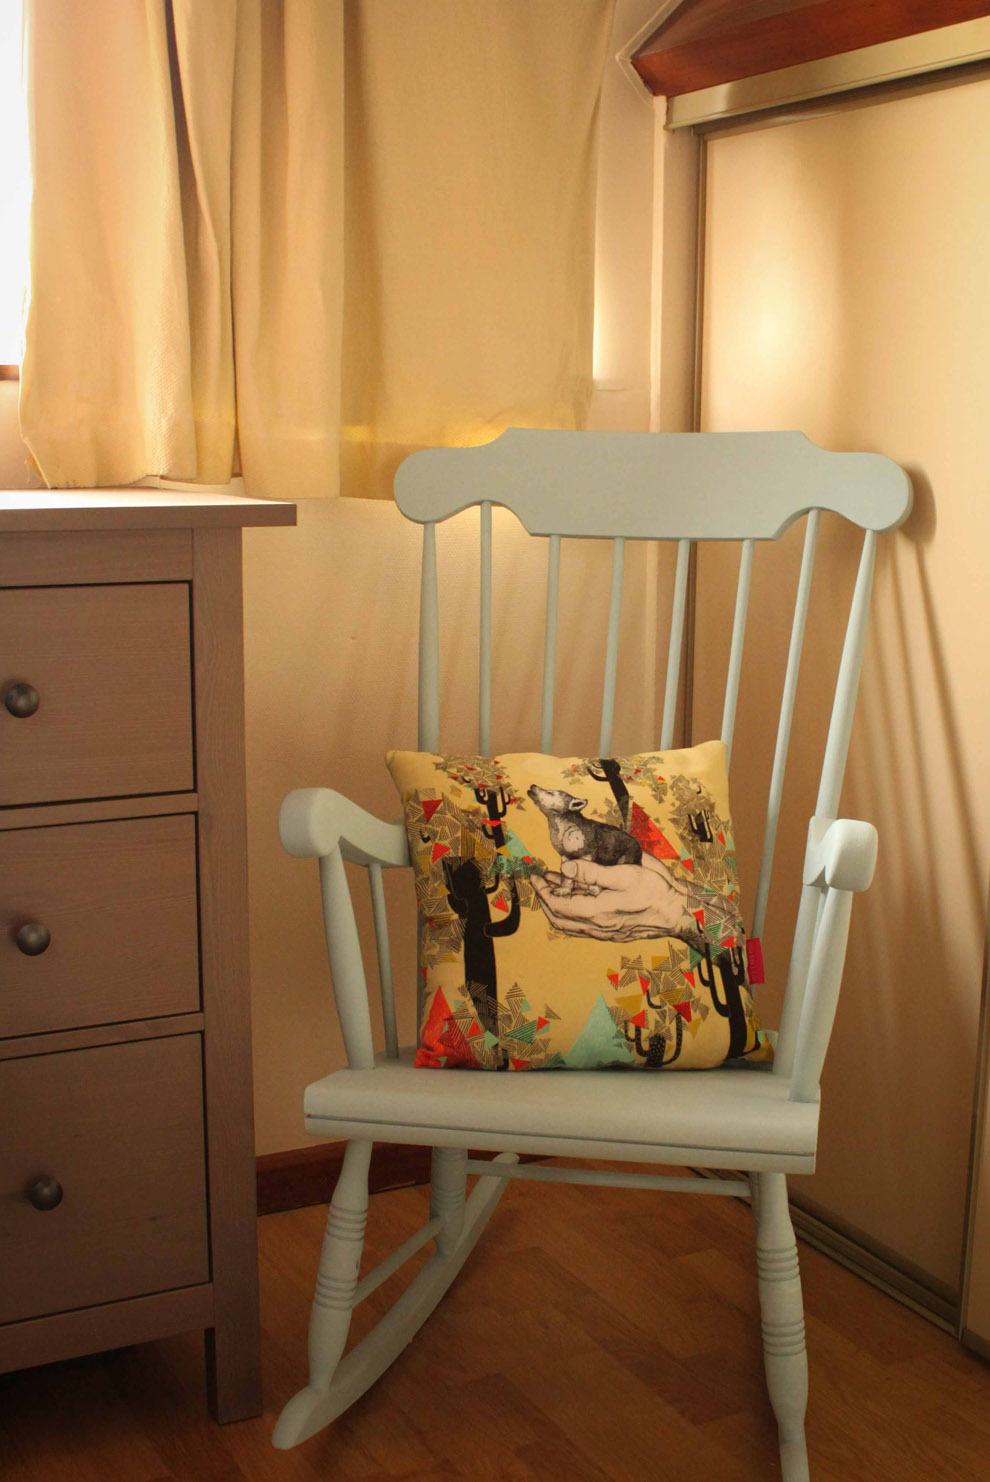 Mon nouvel ancien rocking chair ♥